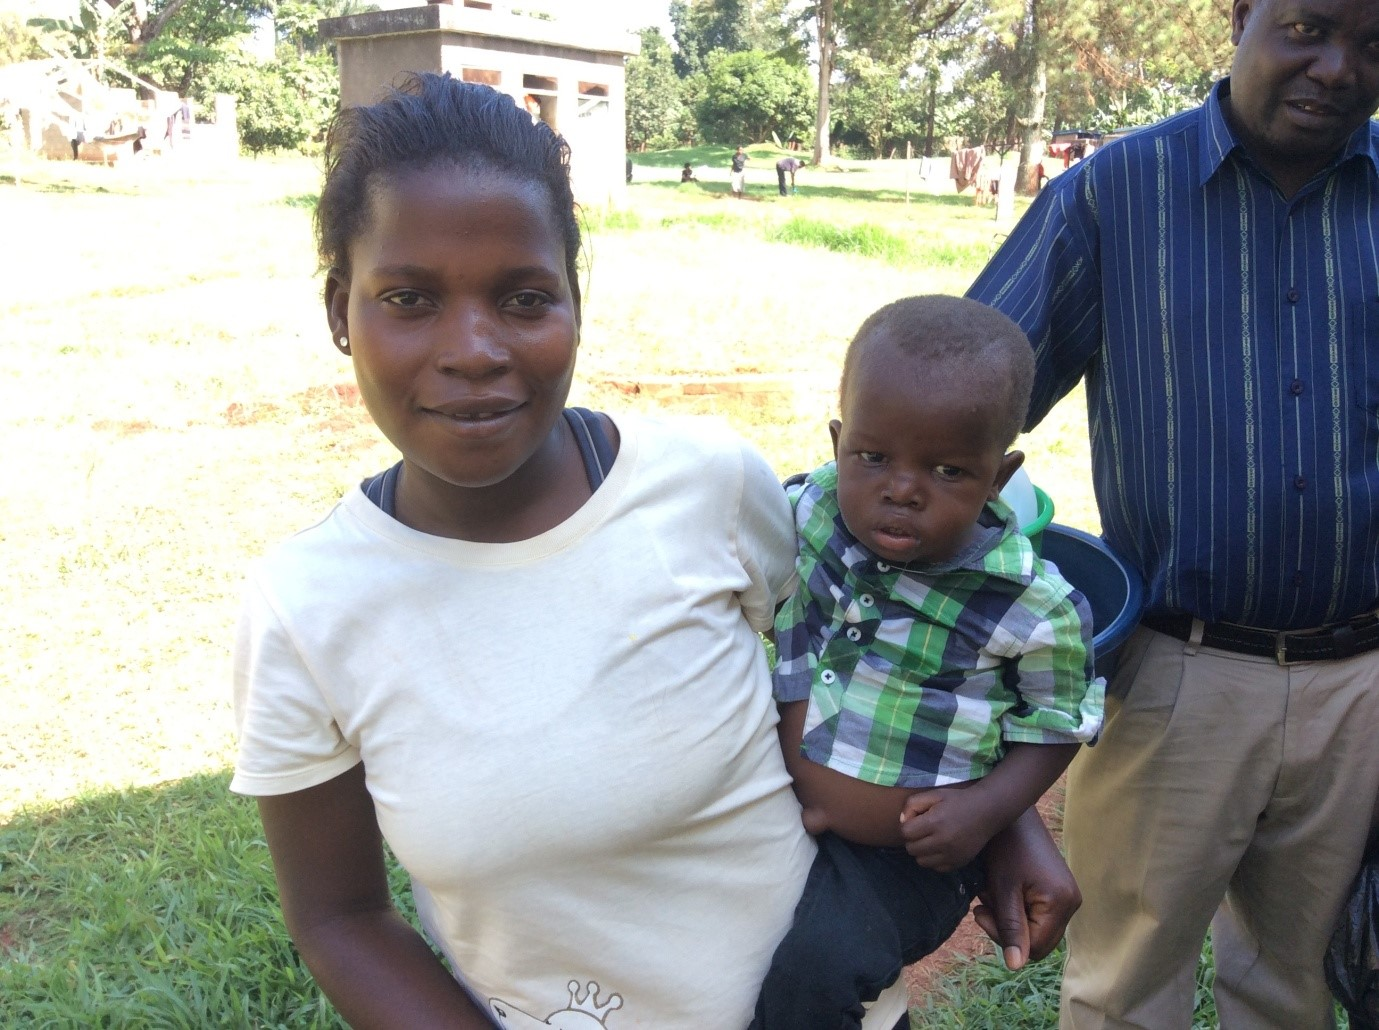 ugandan-boy-with-h-i-v-helped-by-nonprofit